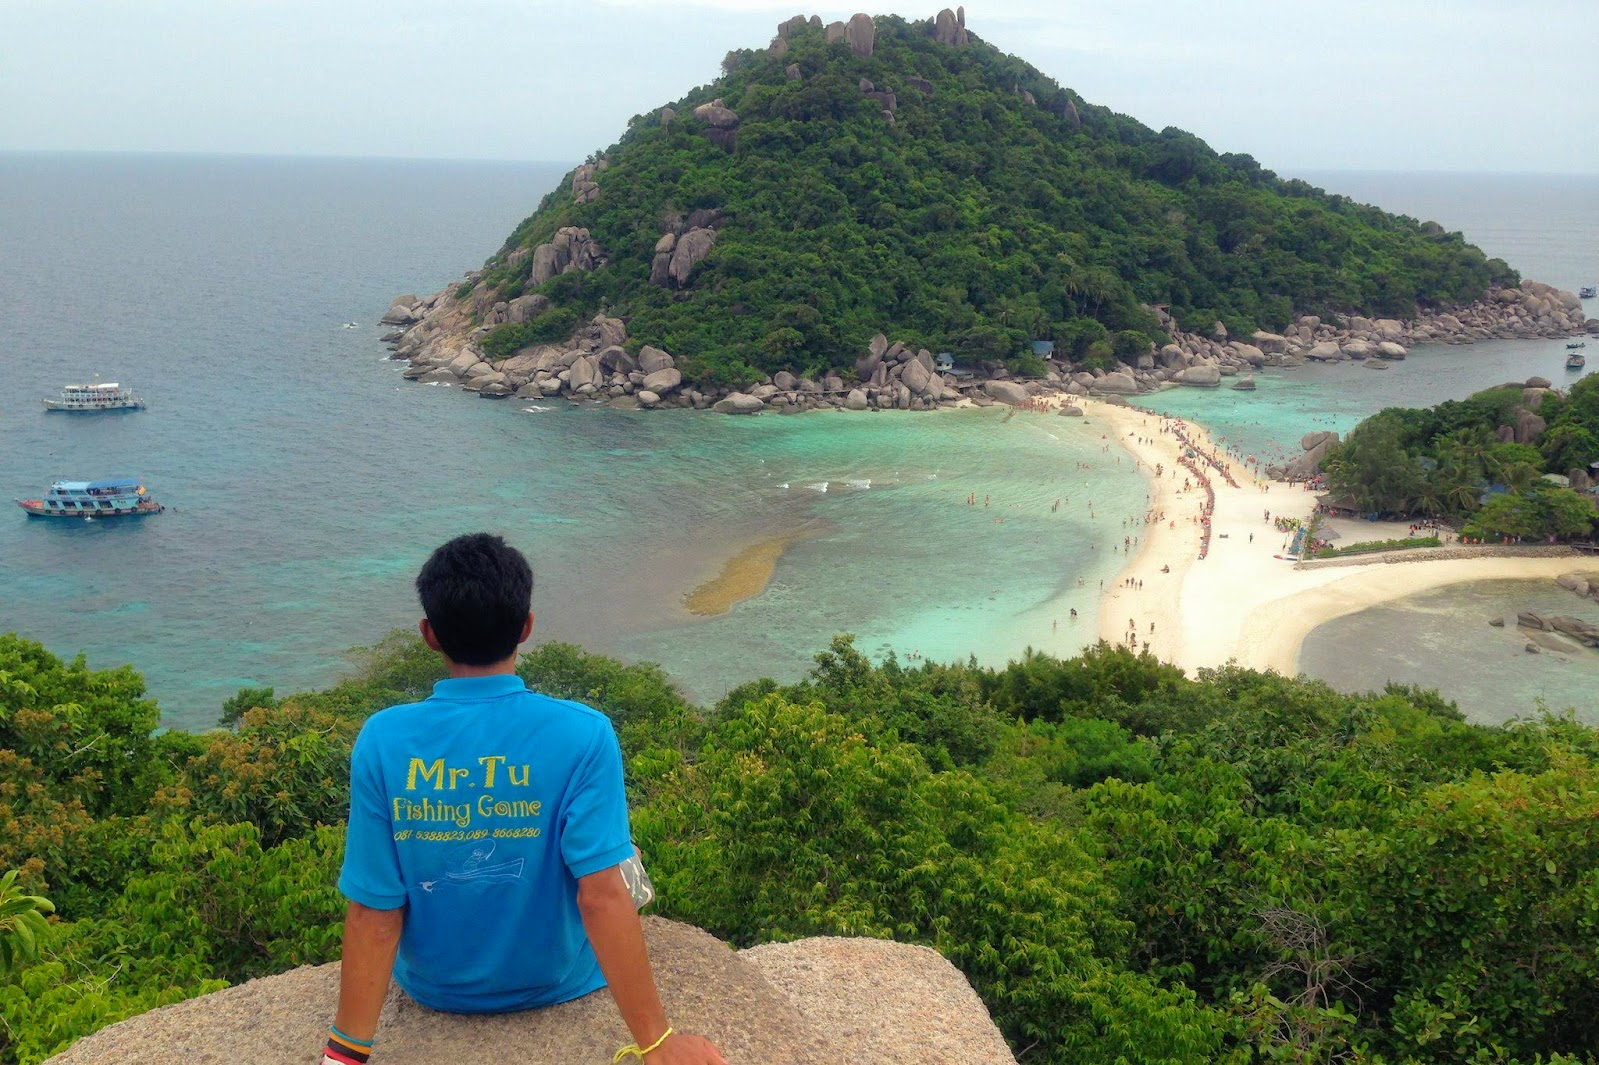 Mr. Tu Snorkel Day Trip to Koh Nangyuan & Koh Tao by Speed Boat from Koh Samui